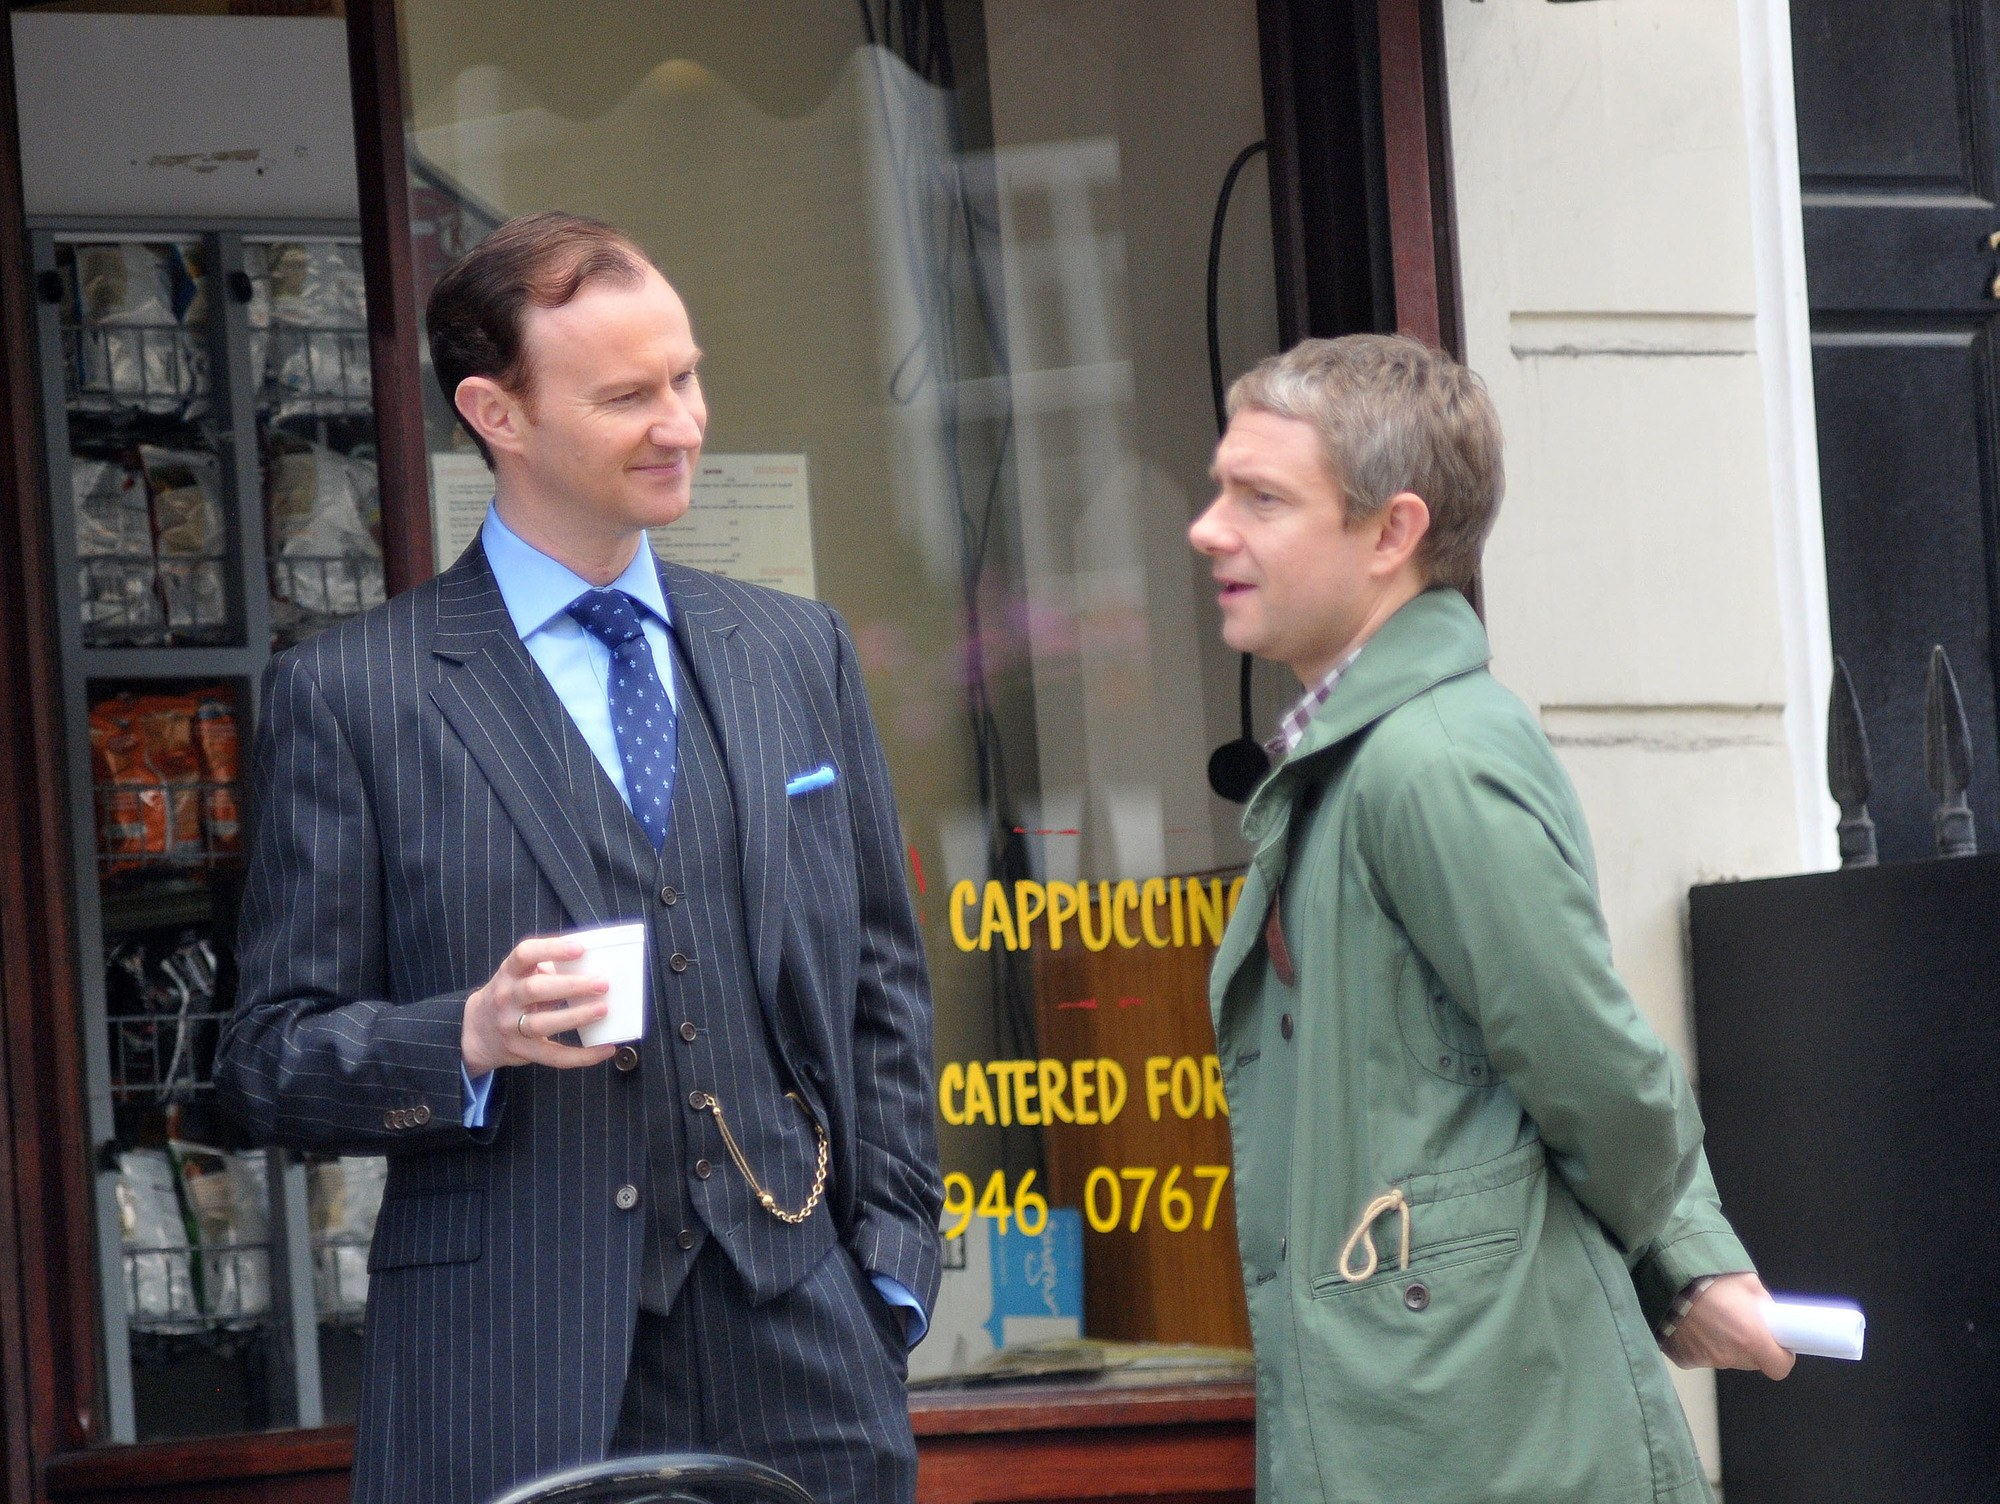 Martin Freeman and Mark Gatiss filming for  the Sherlock HolmesTV series in London, 2011.